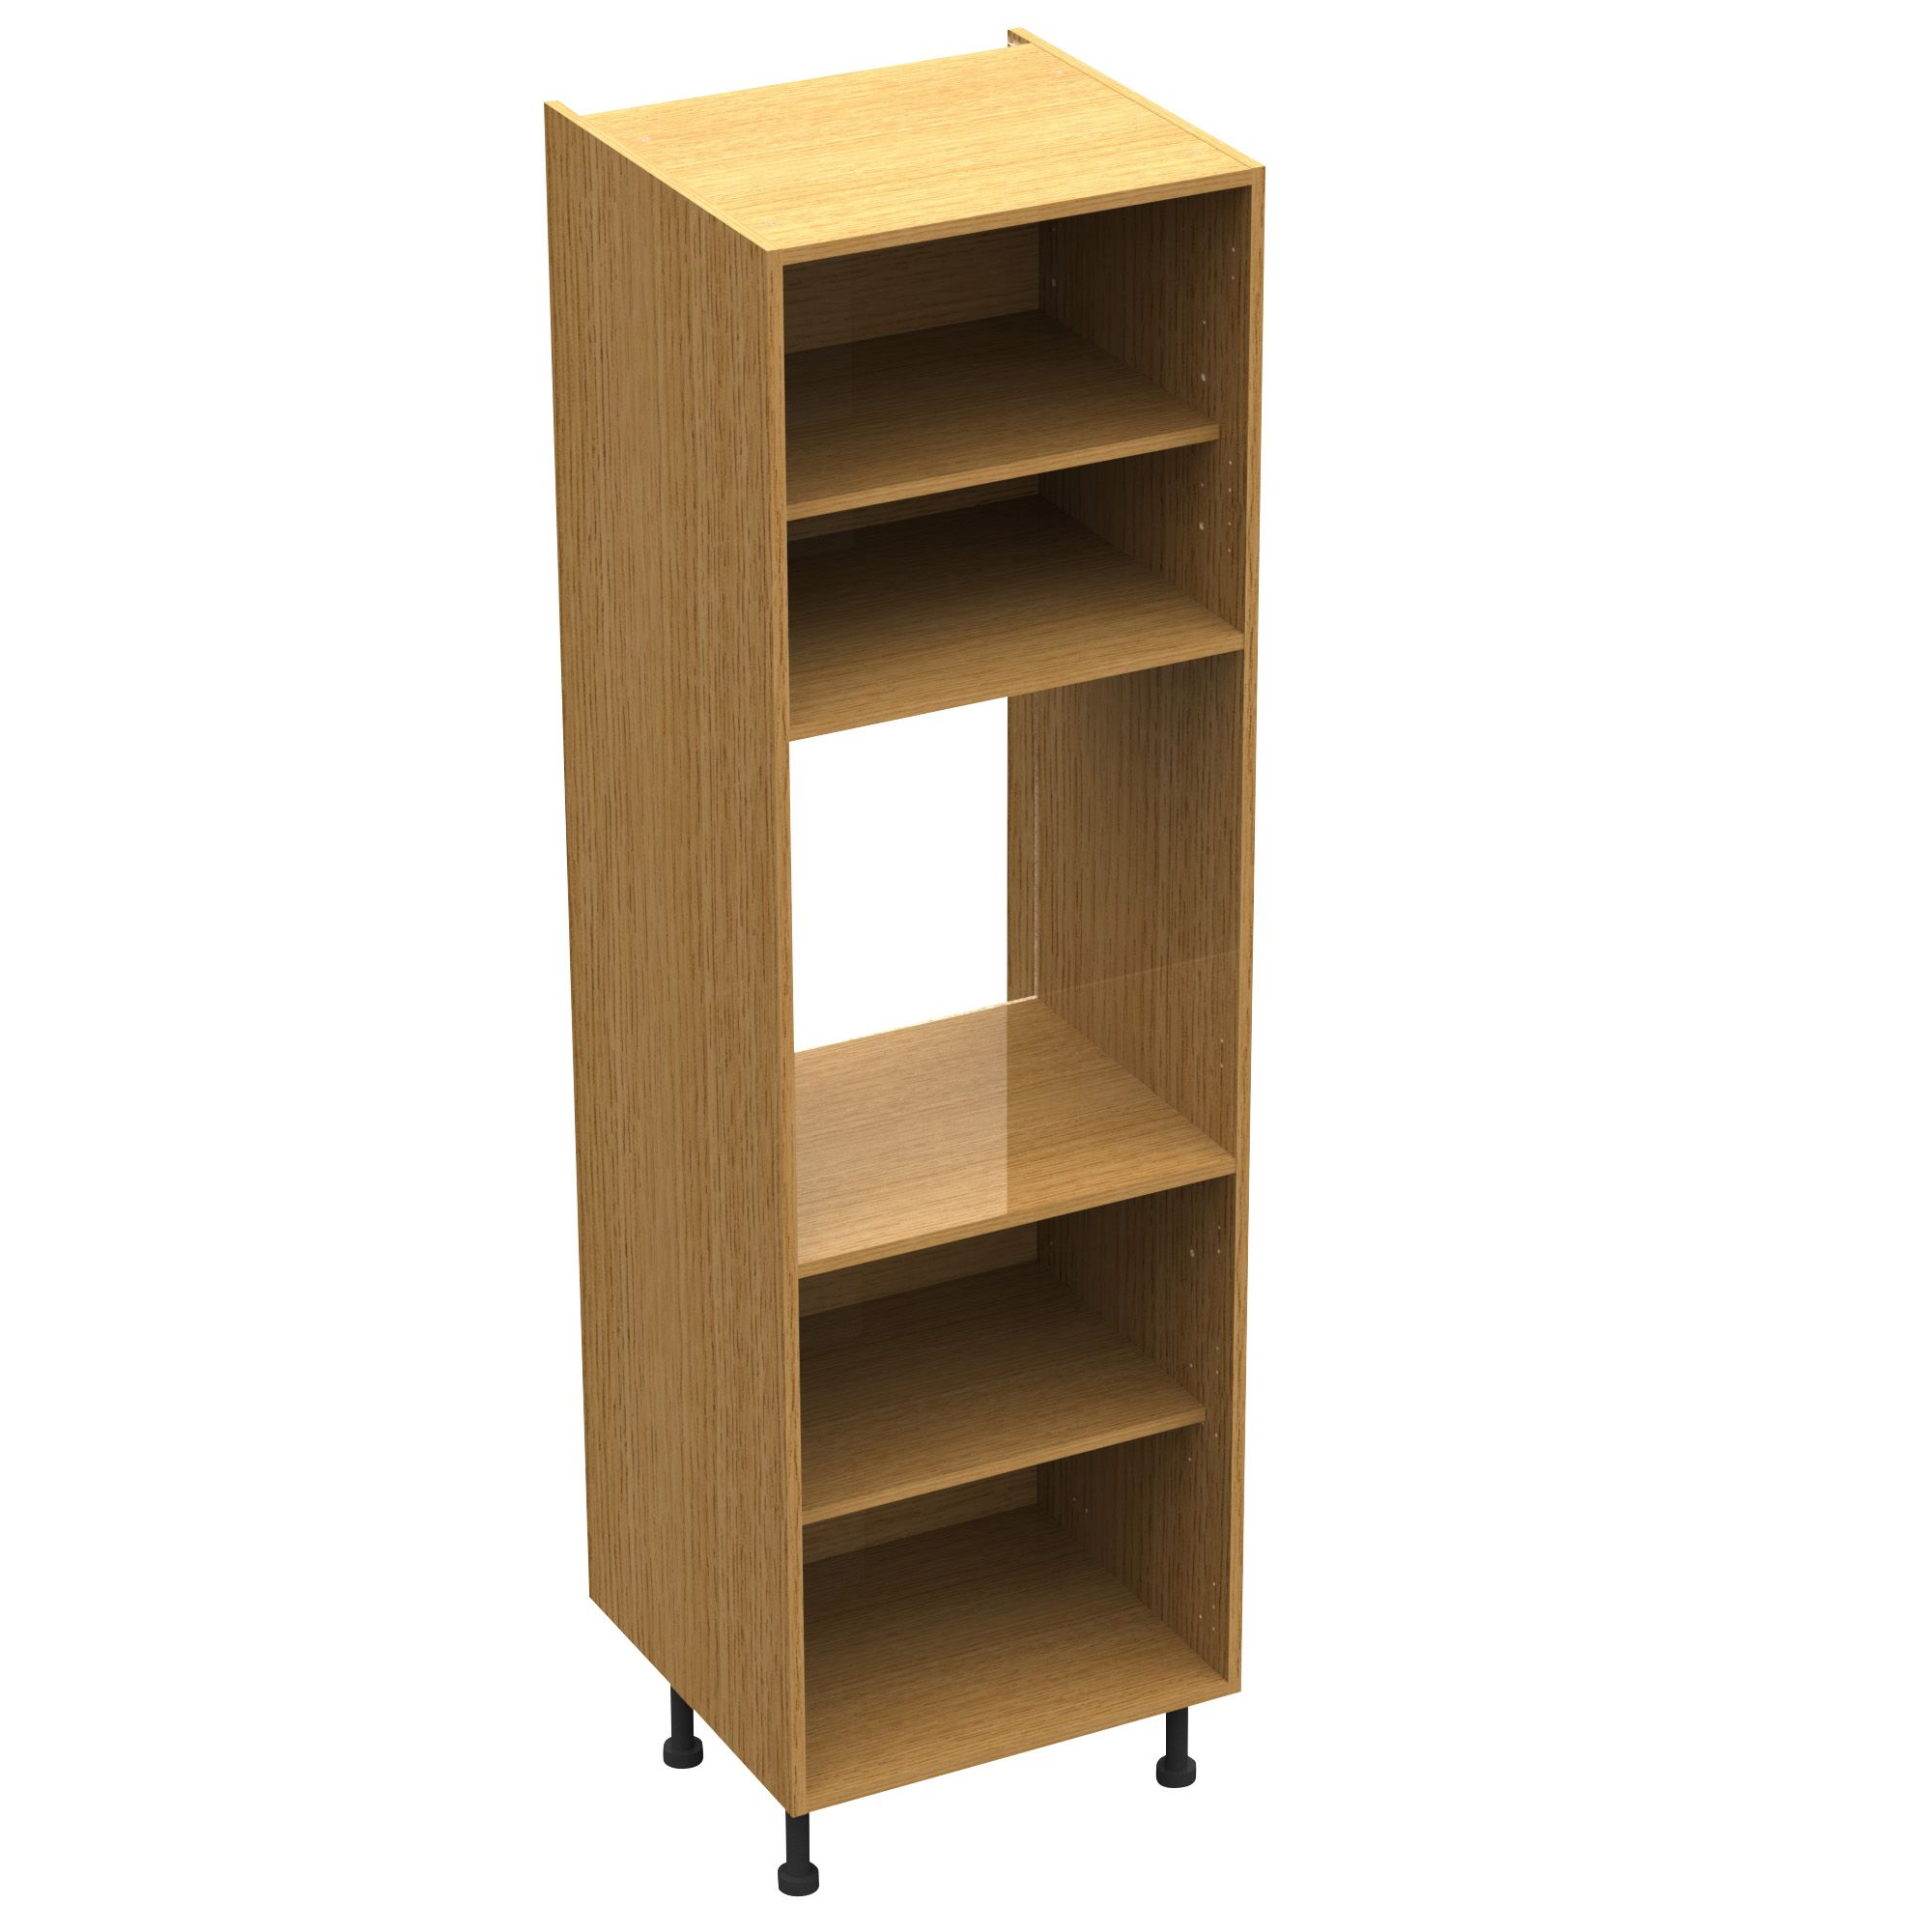 cooke lewis oak effect 50 50 shelf pack departments diy at b q. Black Bedroom Furniture Sets. Home Design Ideas